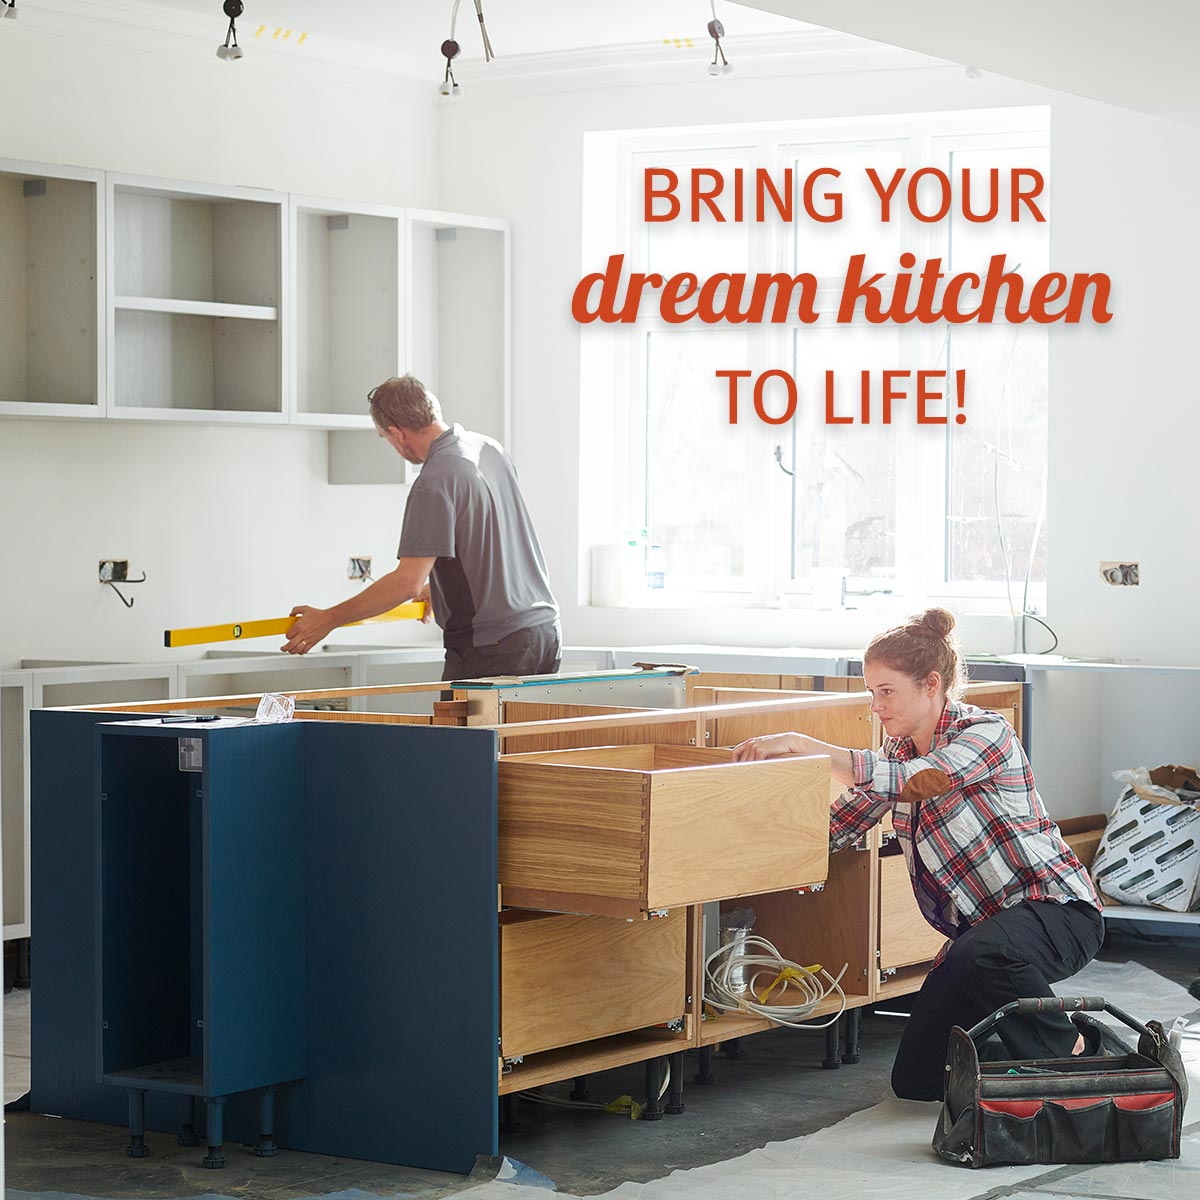 How to Bring Your Dream Kitchen to Life